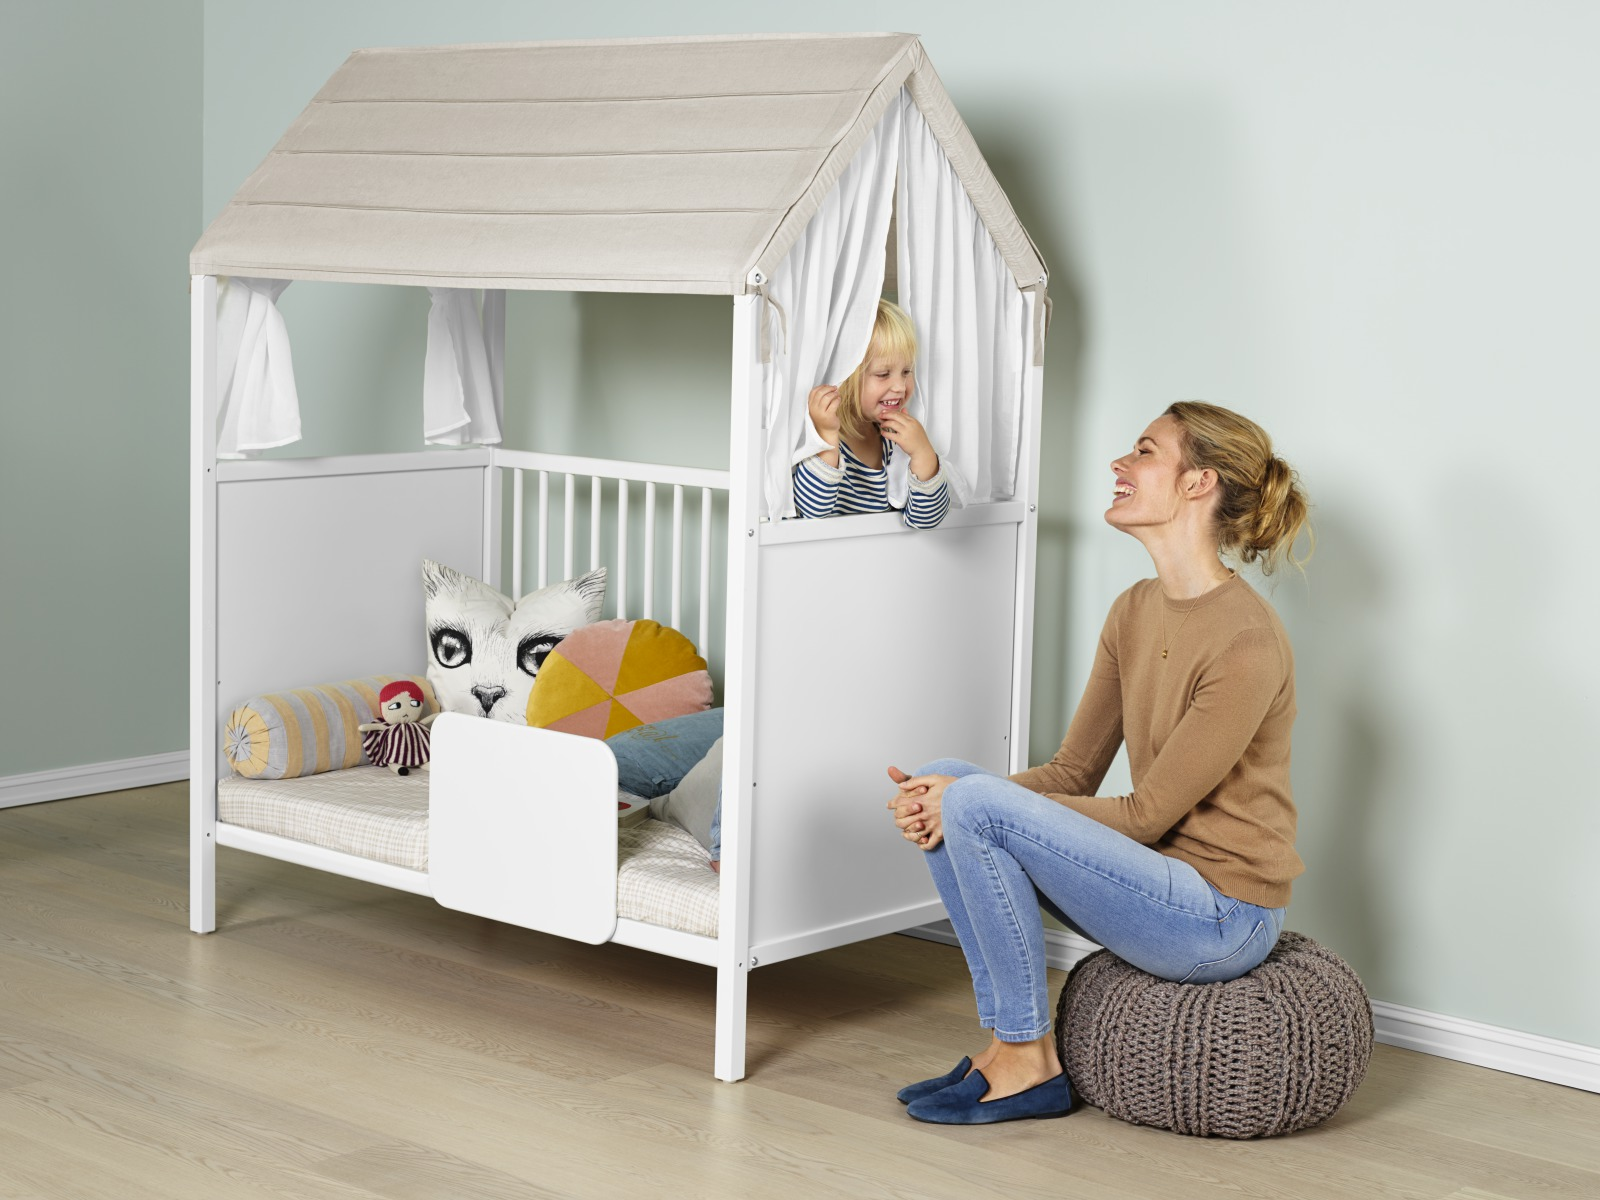 Stokke® Home™ Bed with Roof textiles.